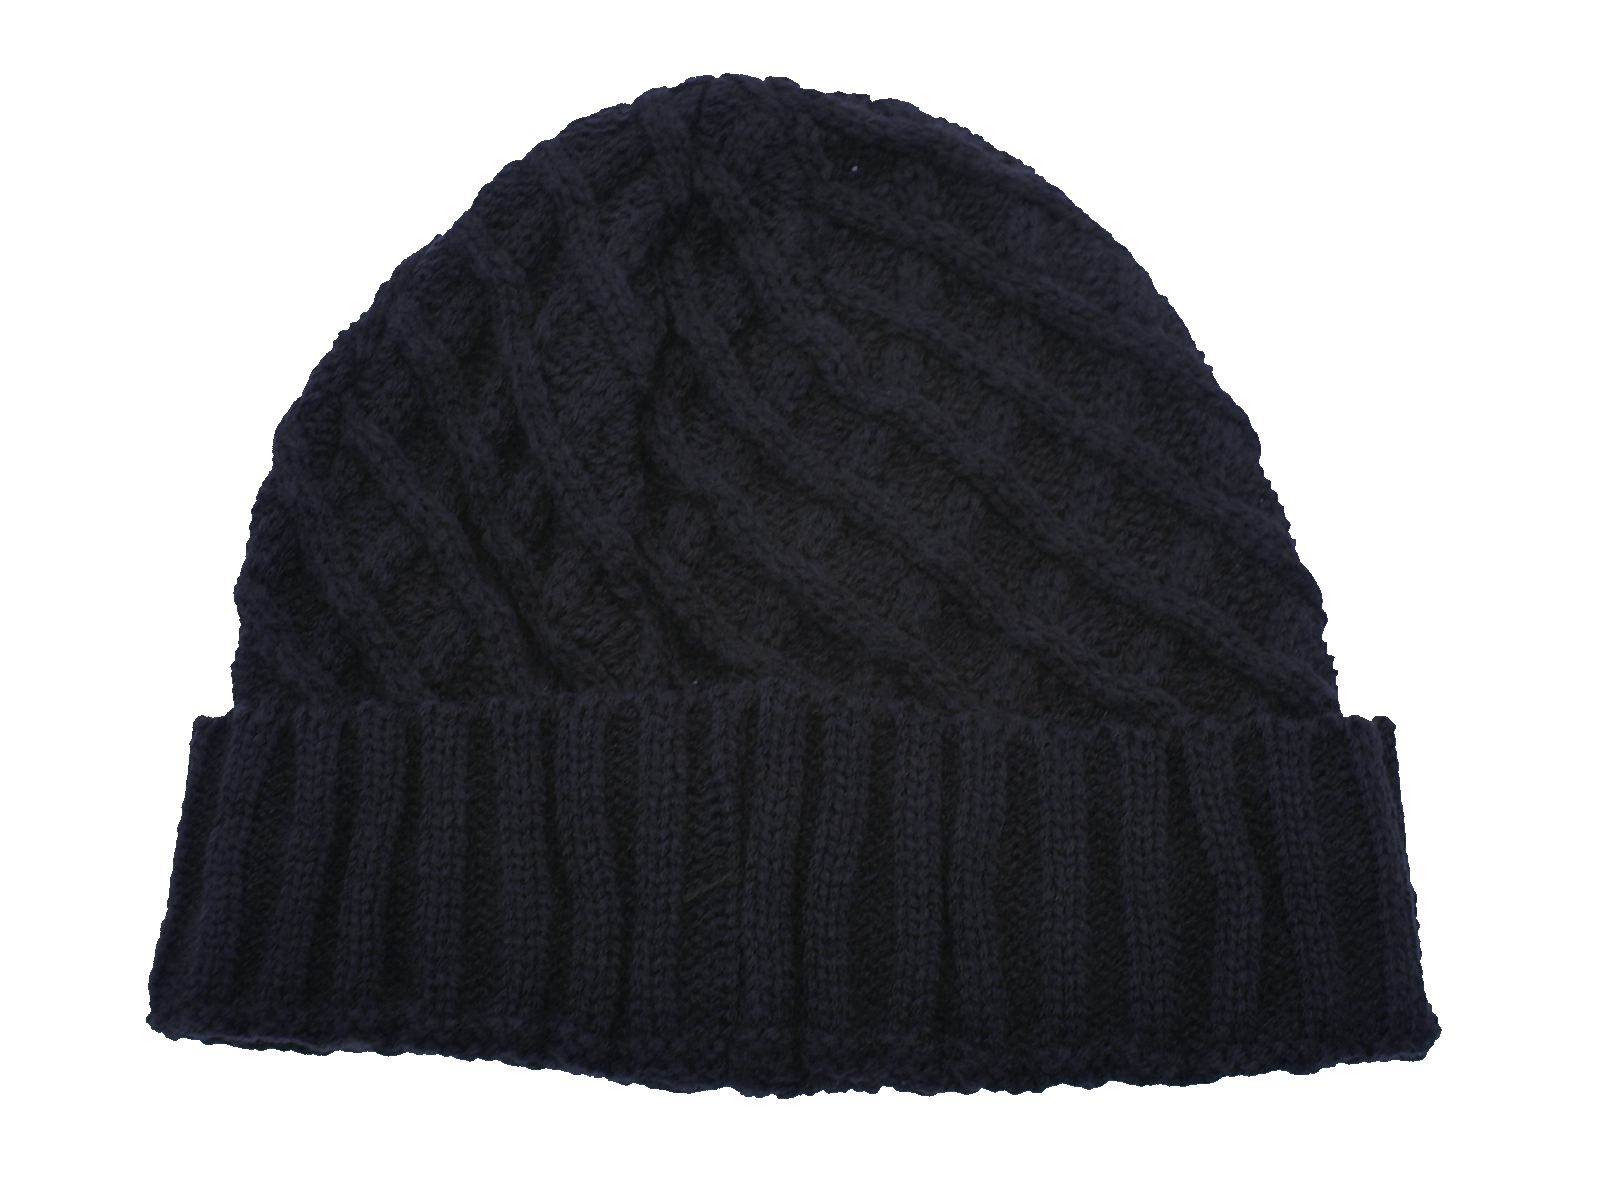 Mens Winter Knitted Wooly Hats Beanie Bobble Hat Warm ...